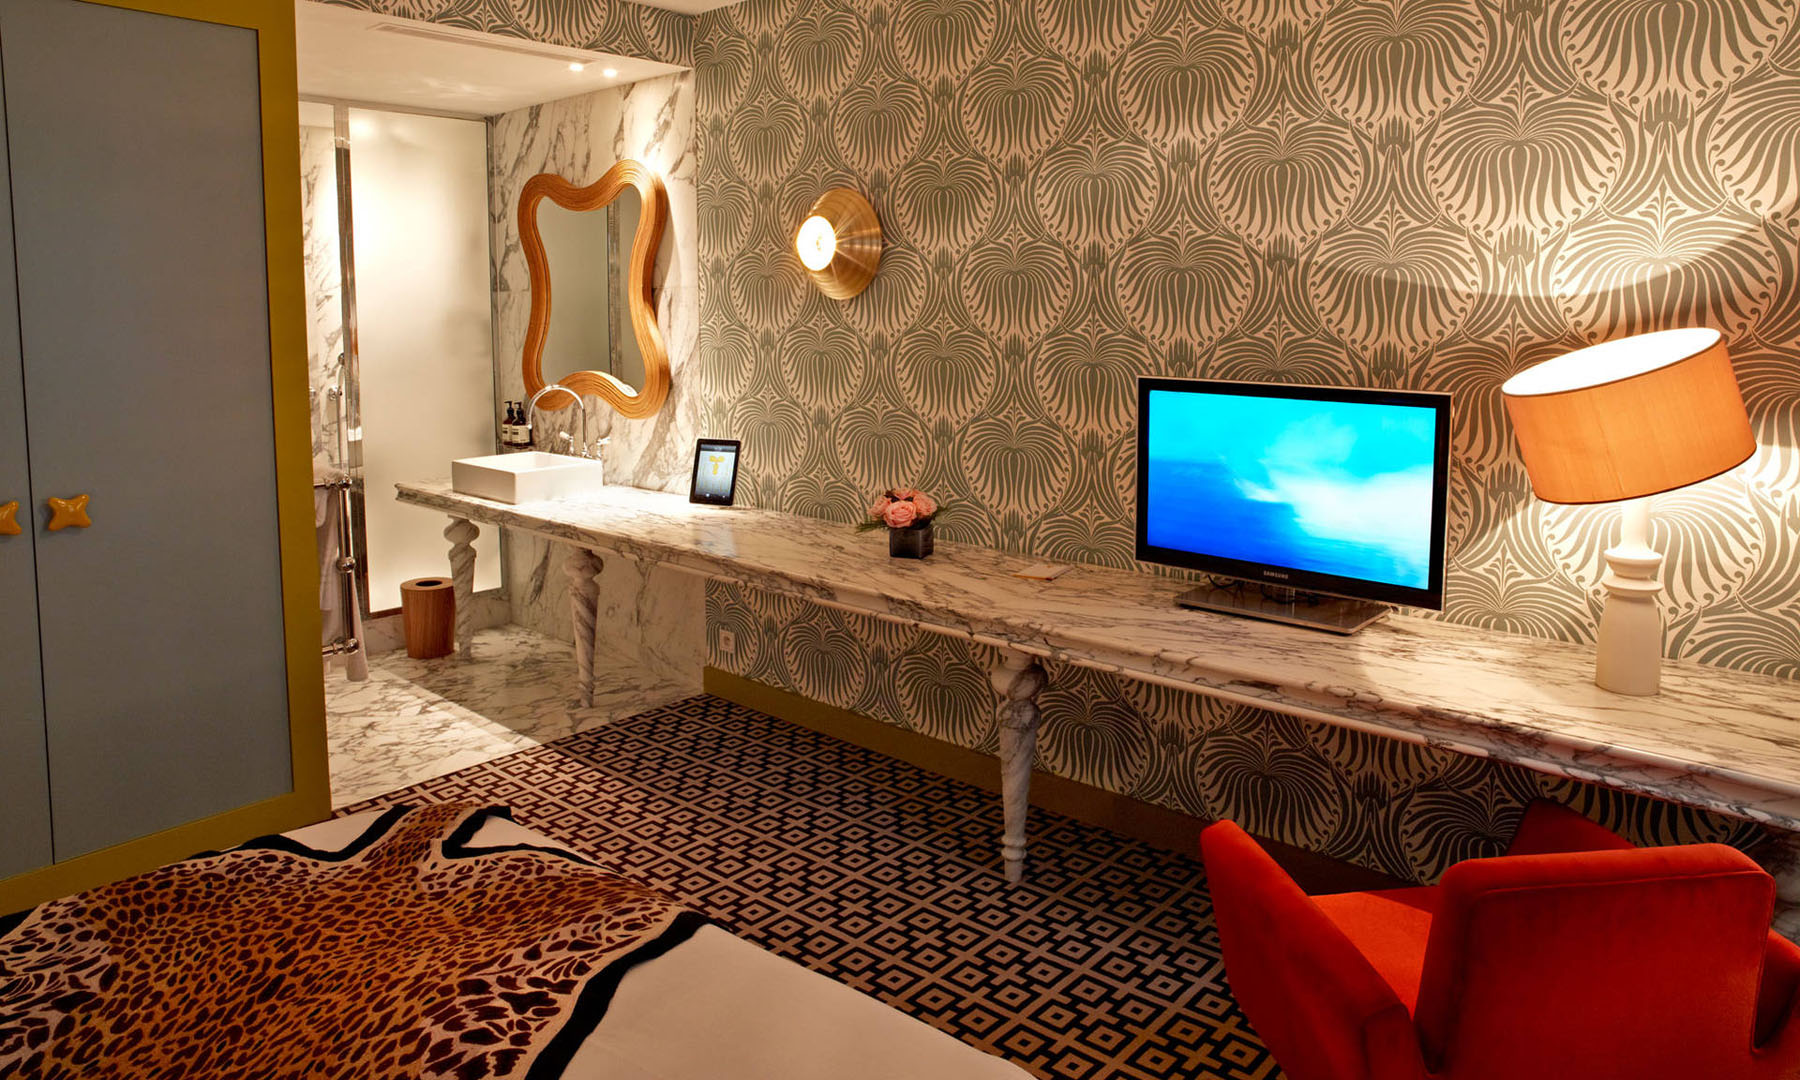 French Art Deco Interior Design By India Mahdavi At Hotel Thoumieux Paris Idesignarch